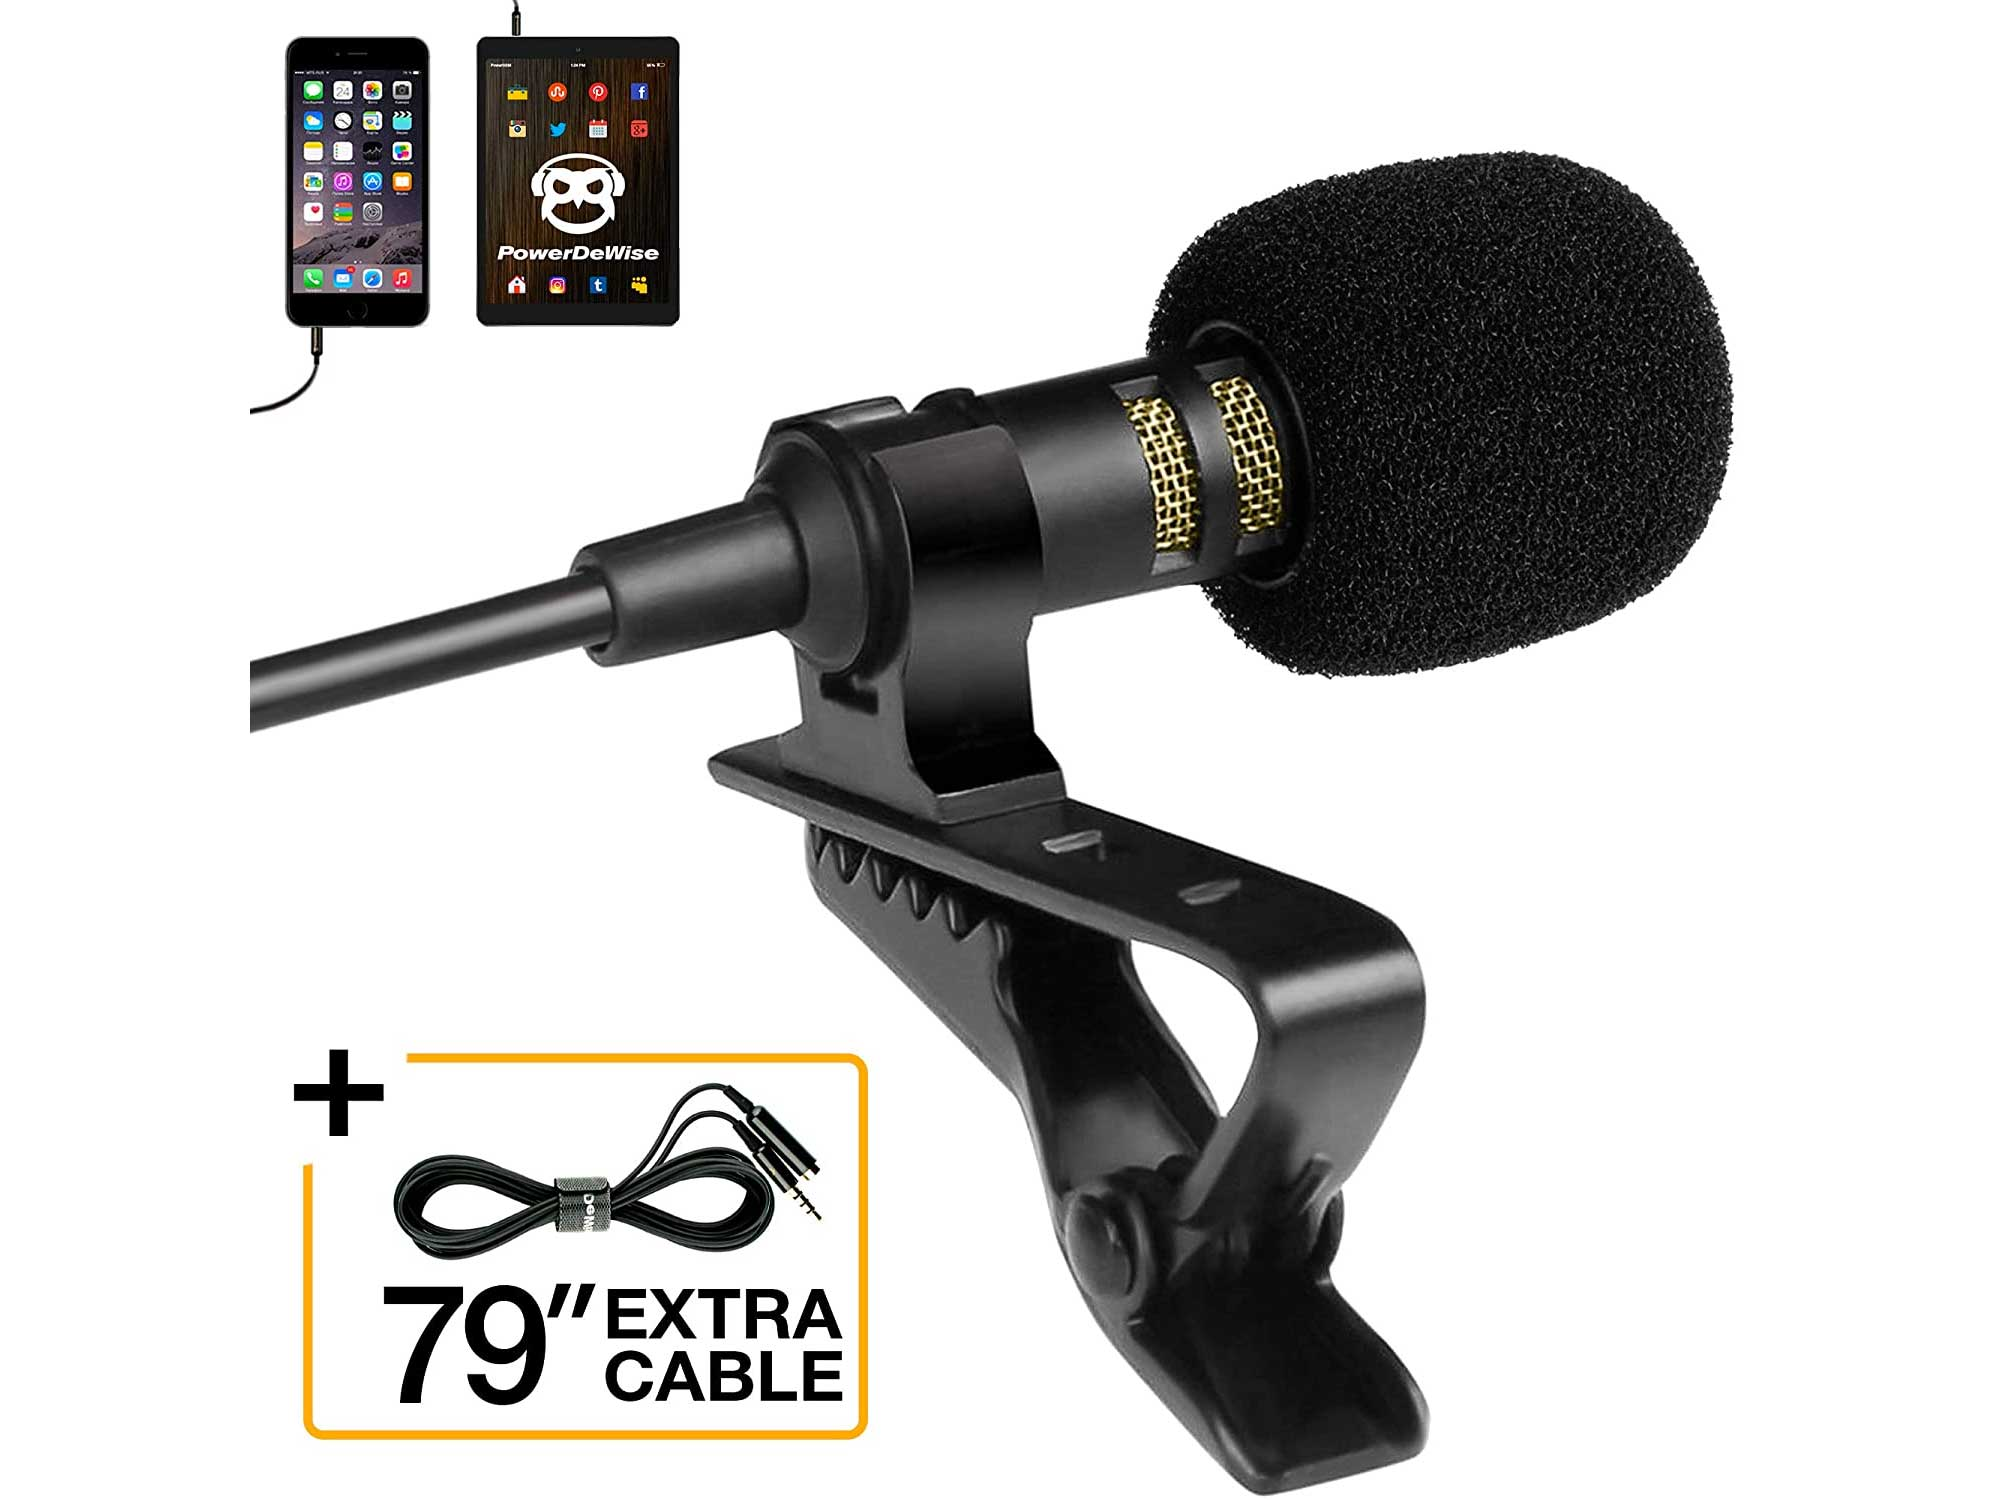 Professional Grade Lavalier Lapel Microphone Omnidirectional Mic with Easy Clip On System Perfect for Recording Youtube